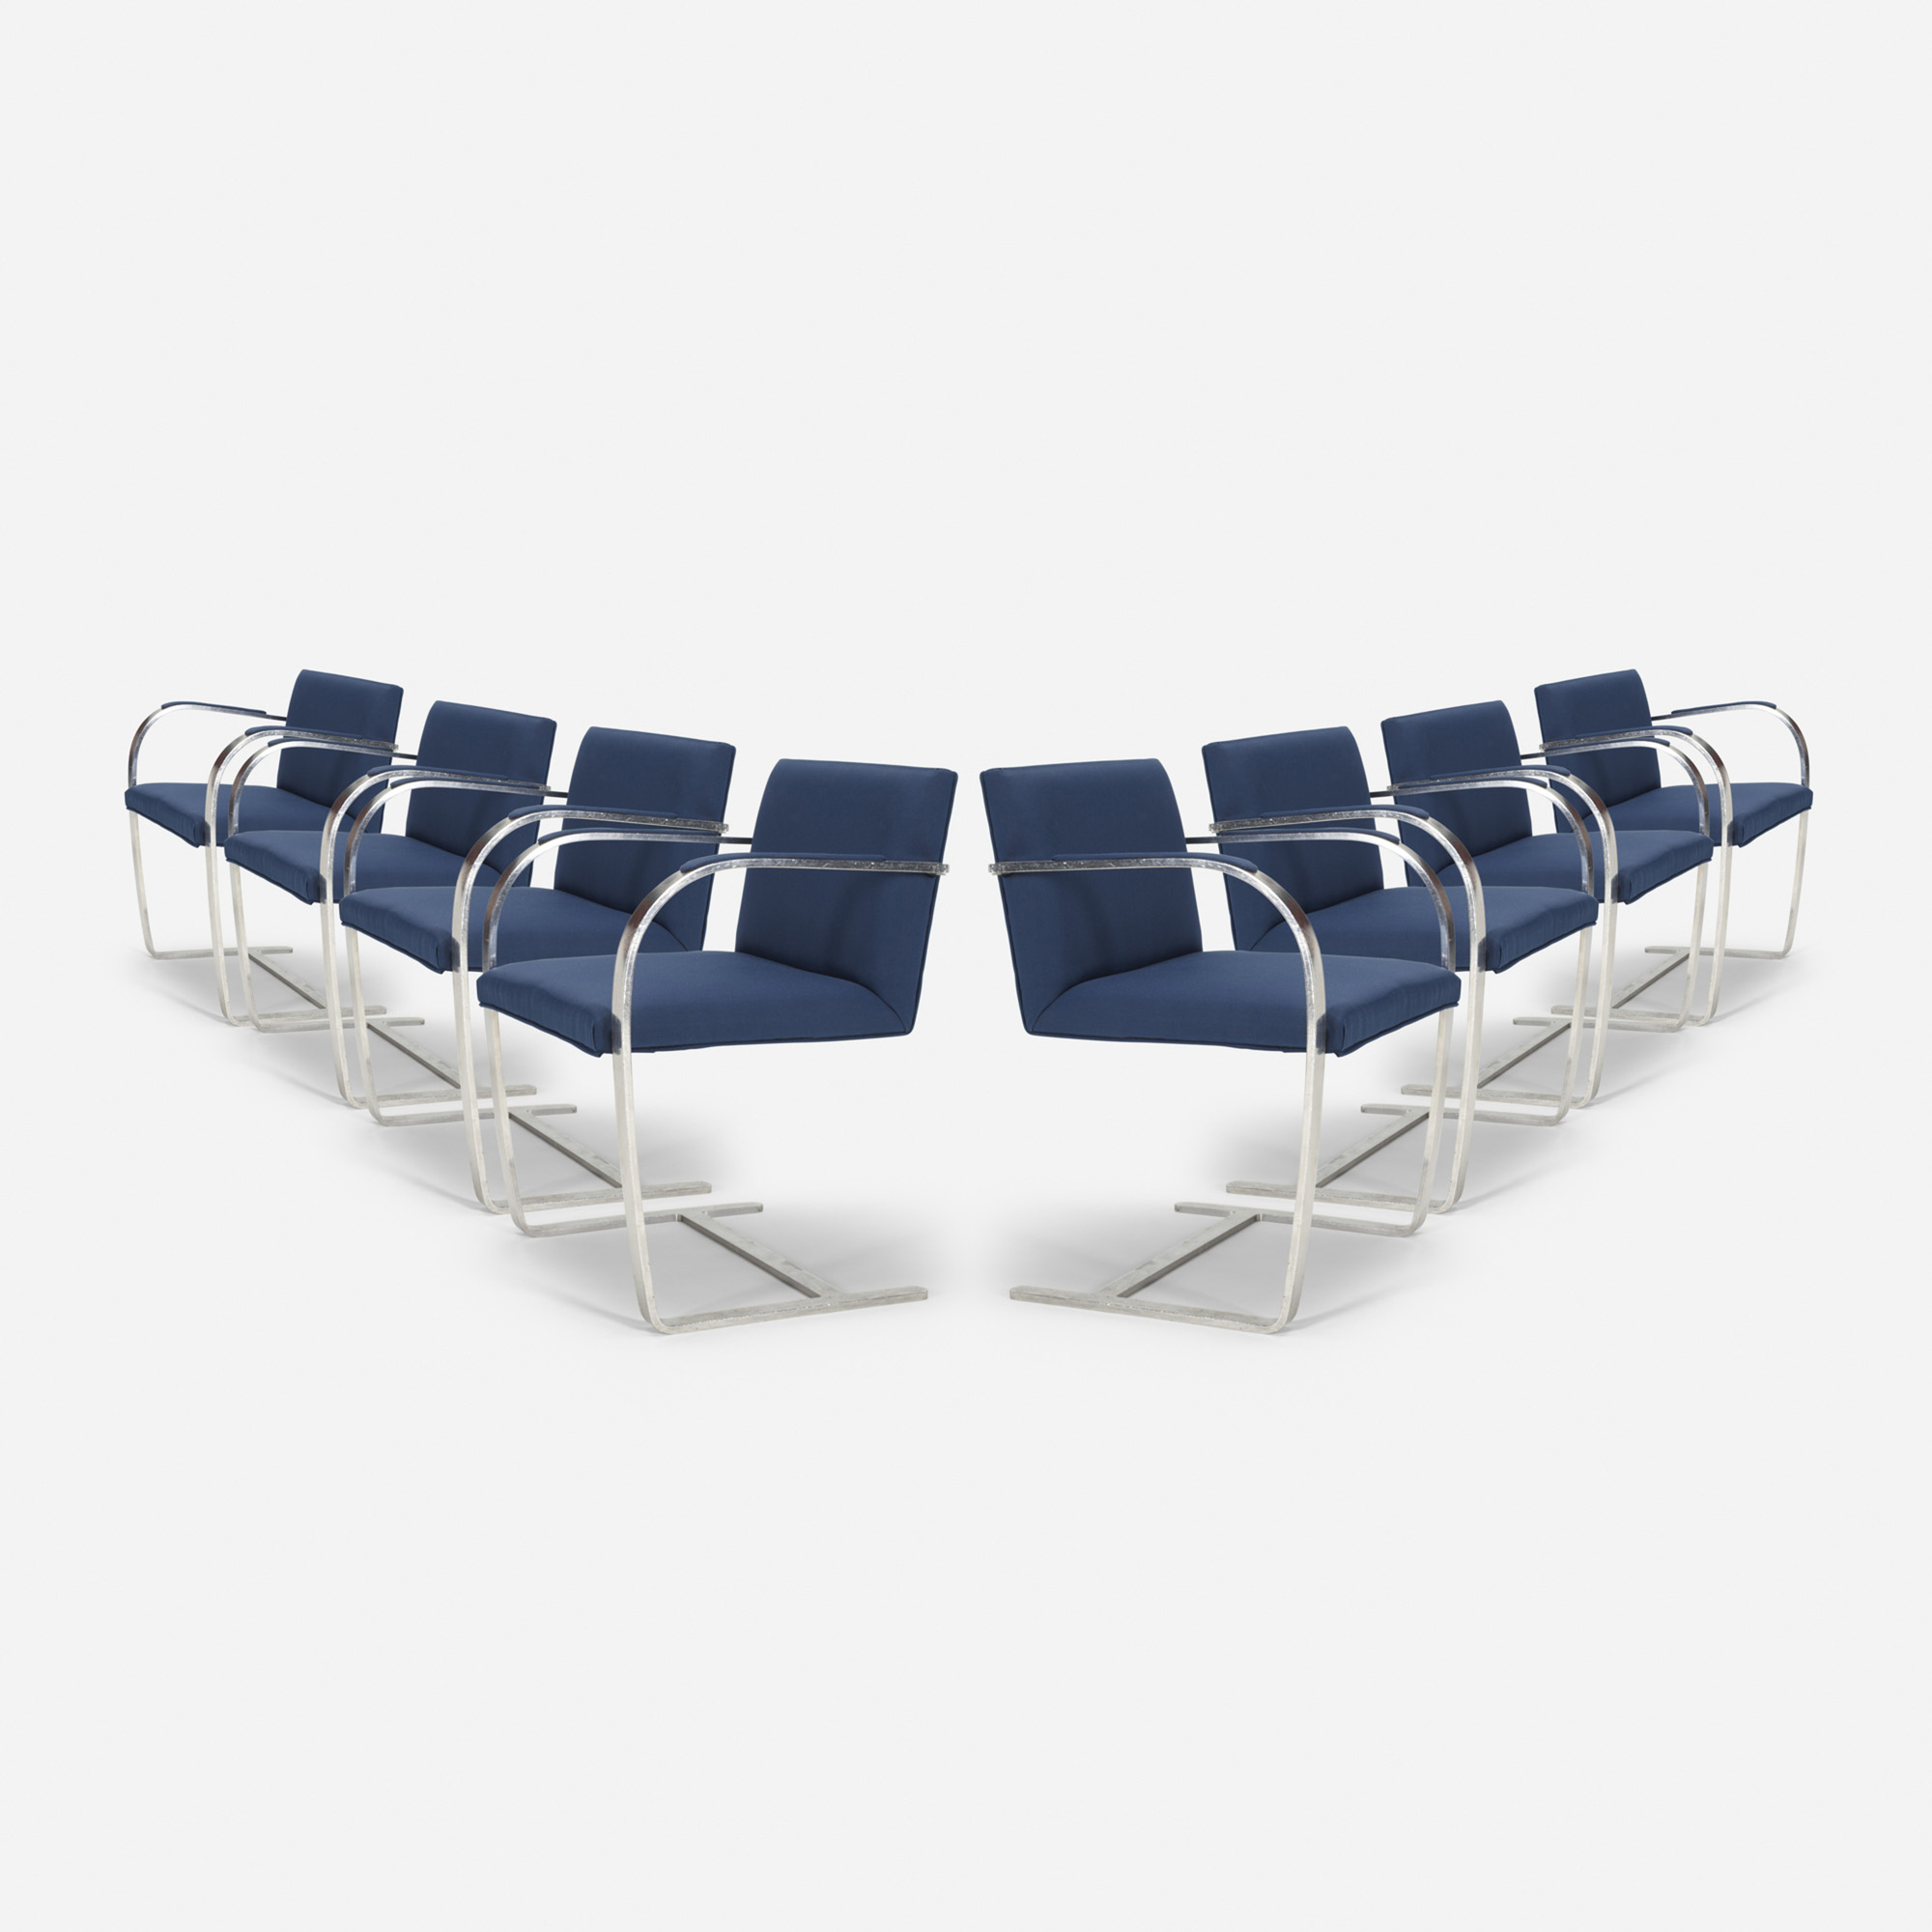 204: Ludwig Mies van der Rohe / Brno chairs from The Four Seasons, set of eight (1 of 1)